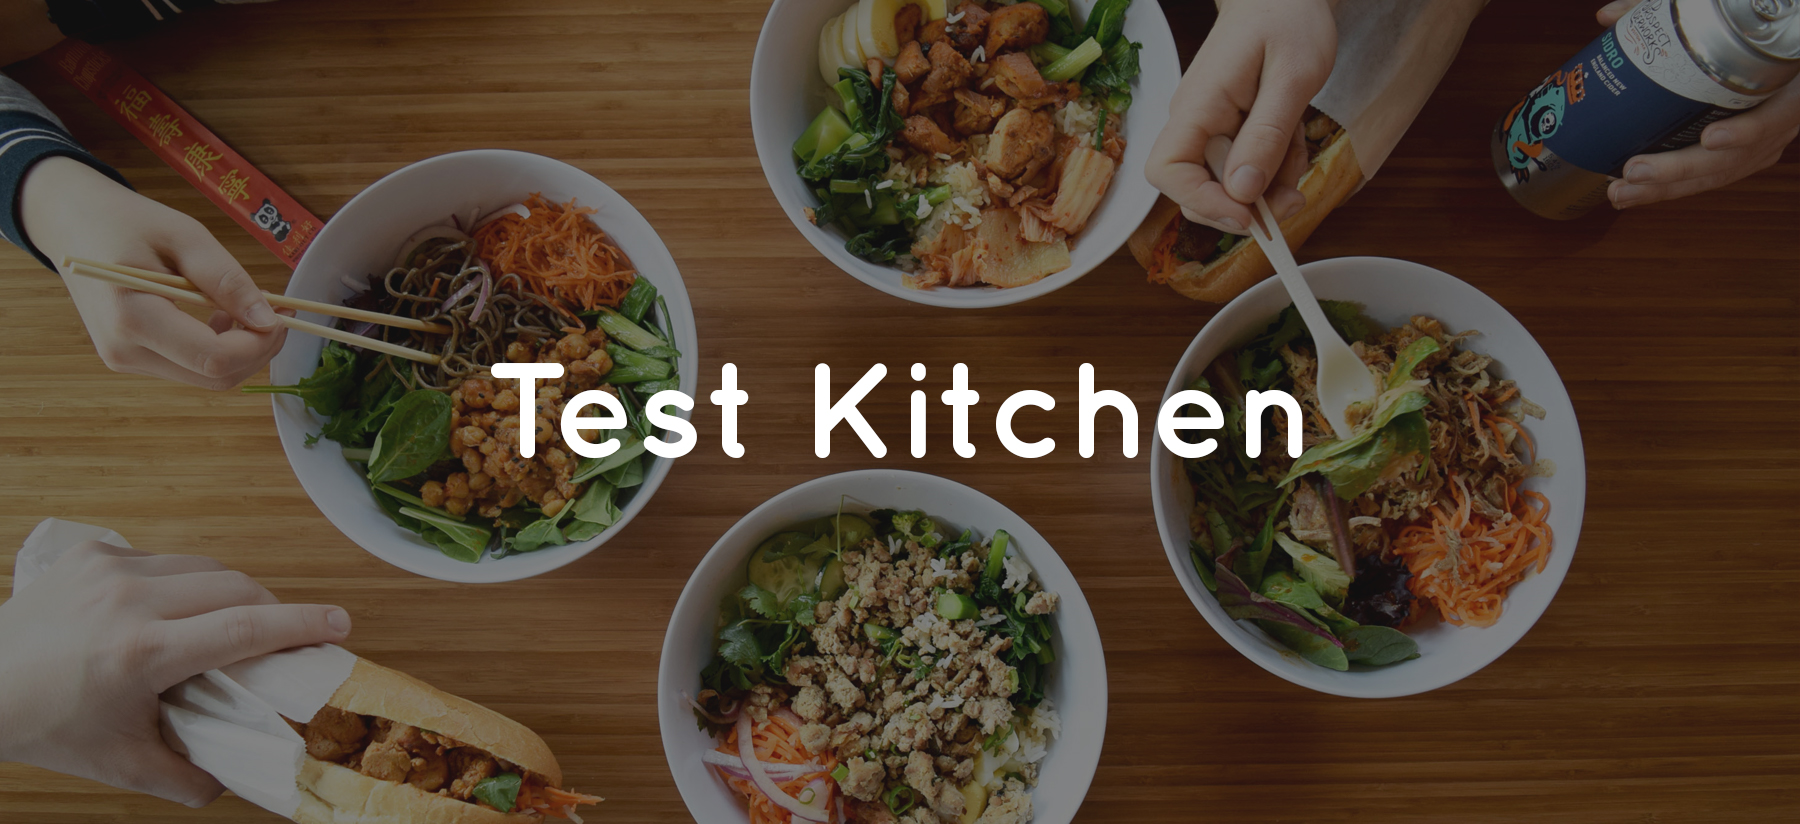 TEST KITCHEN 4.jpg